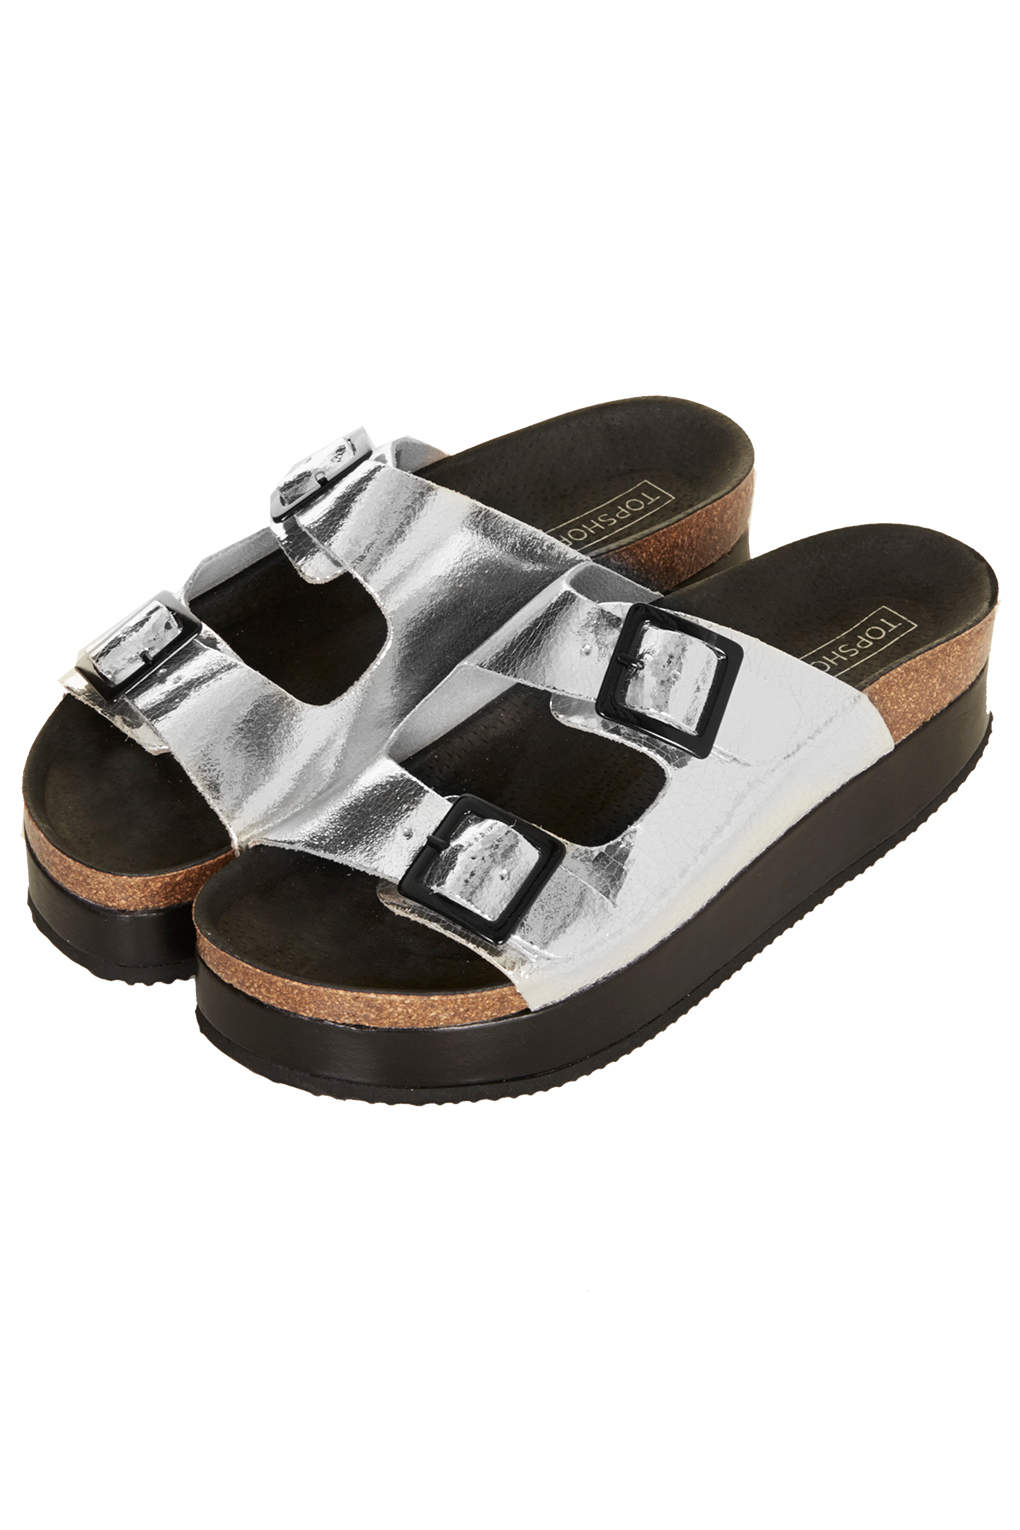 b5e1b00d1d31 Lyst - TOPSHOP Fang Double Buckle Flatform in Metallic